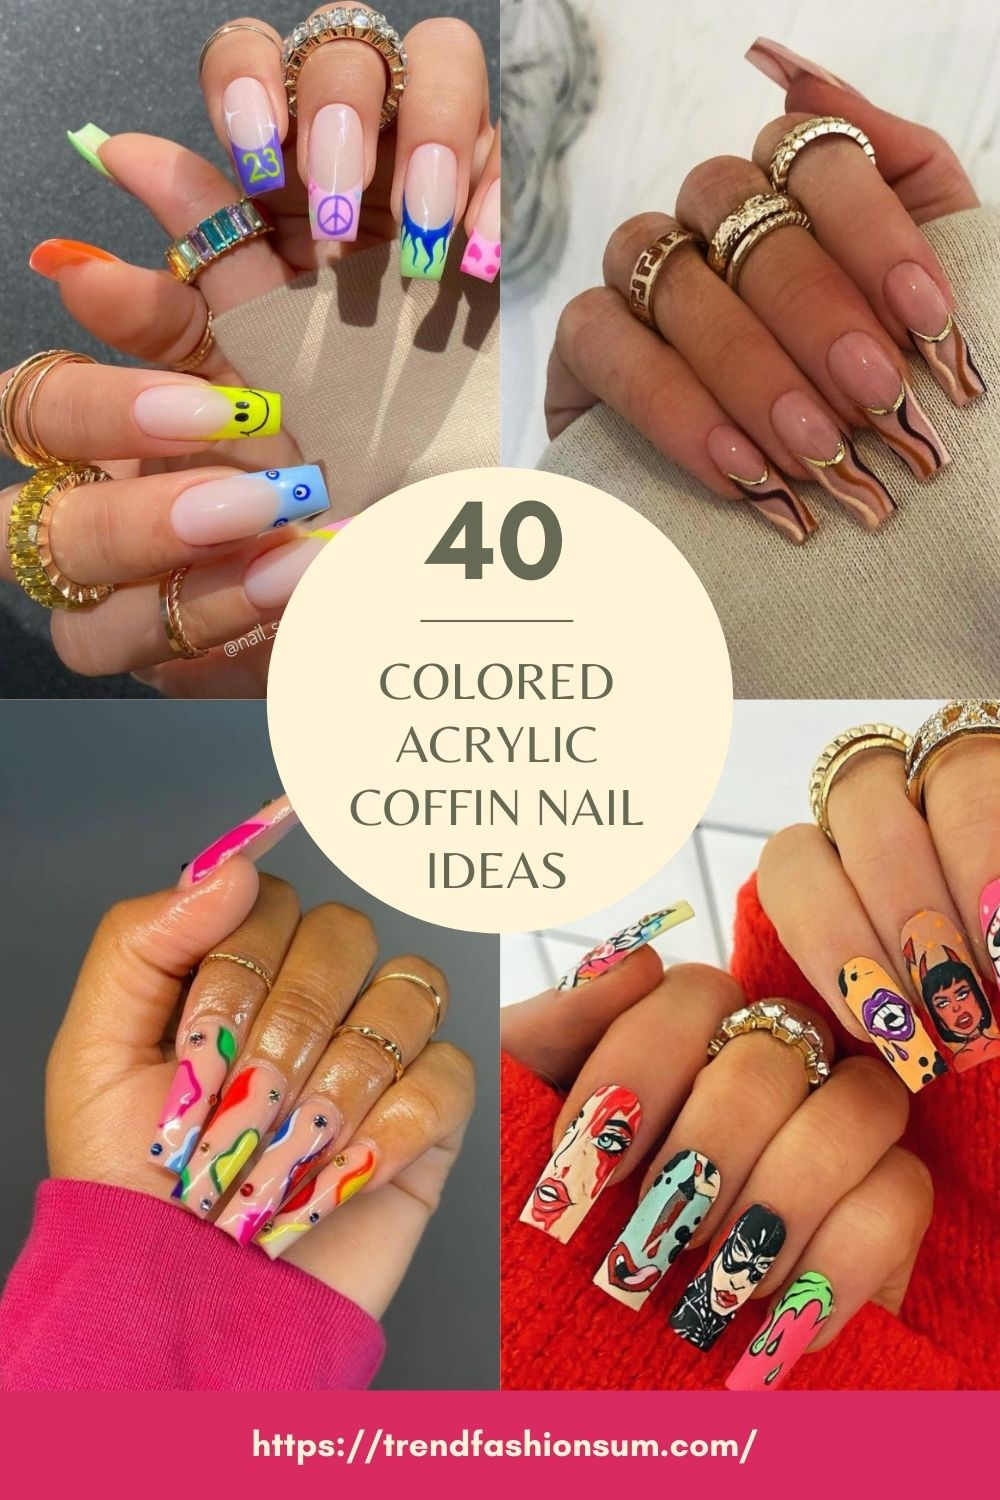 Awesome Colored Acrylic Coffin Nails For Summer Nail Designs!